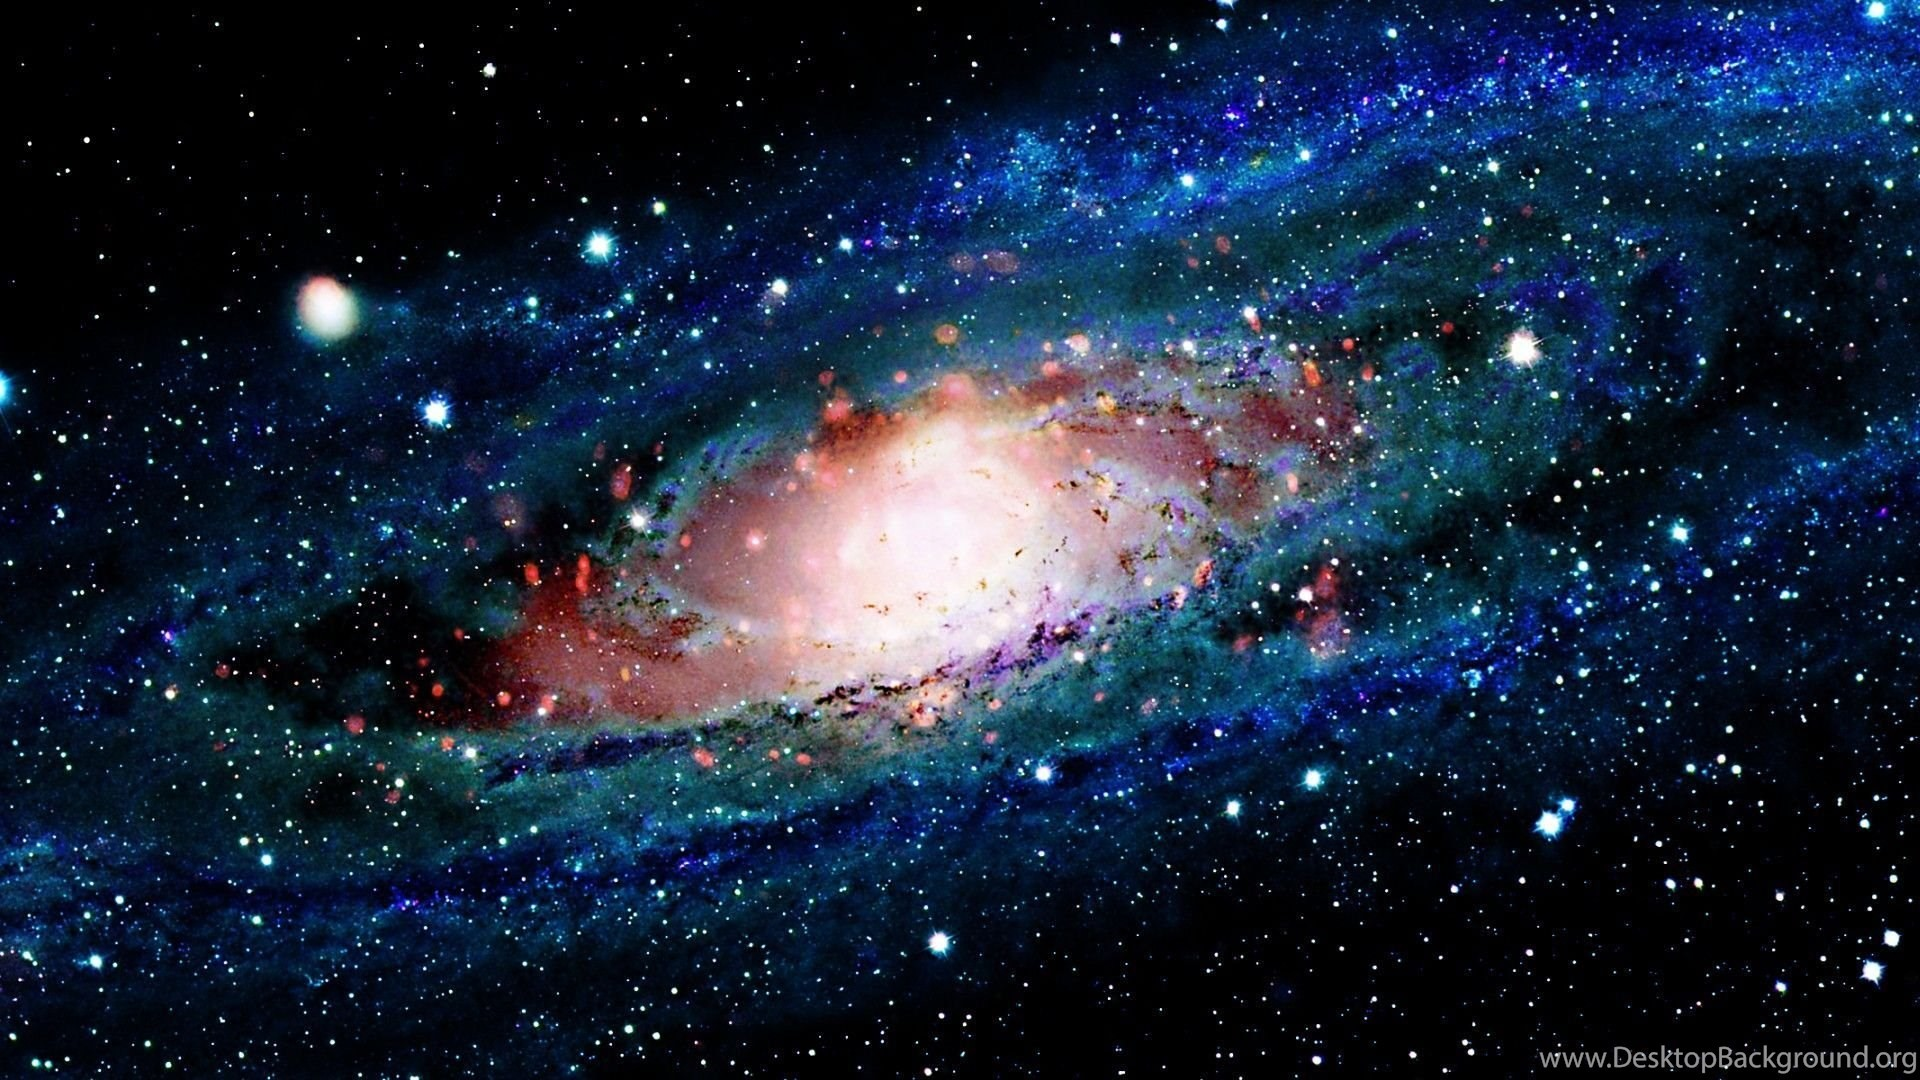 Colorful Space Wallpaper Good Download Hd Colorful Space Wallpaper